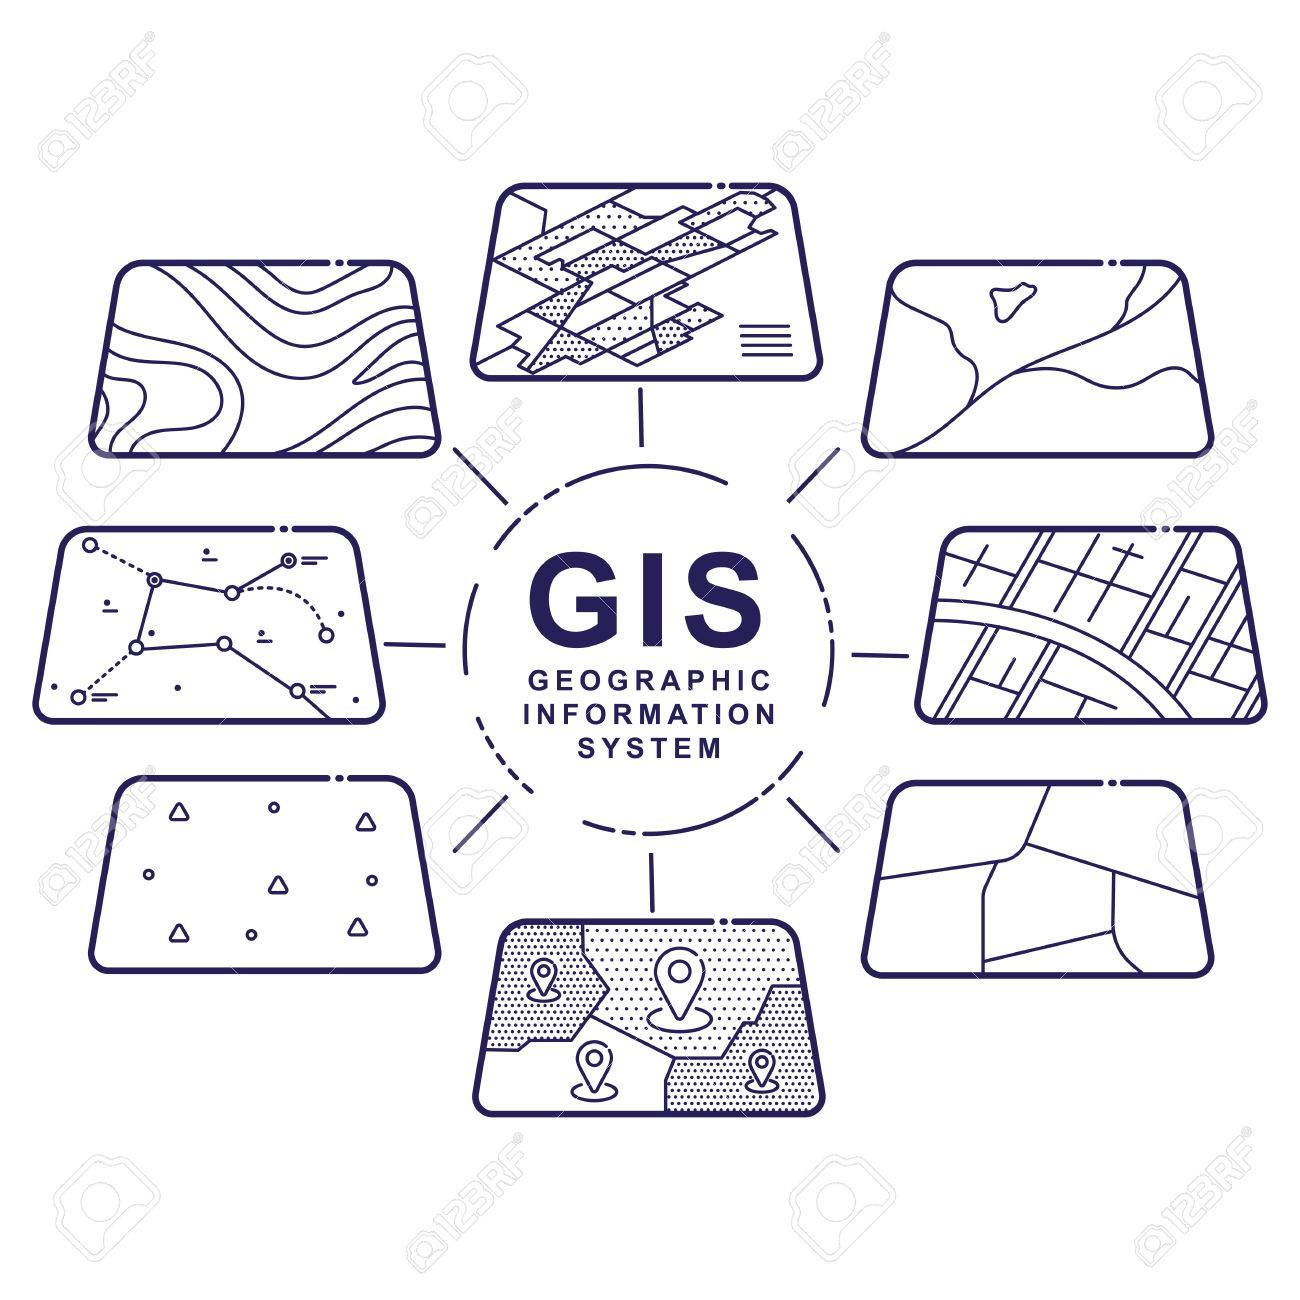 Illustration of GIS Spatial Data Layers Concept for Infographic,